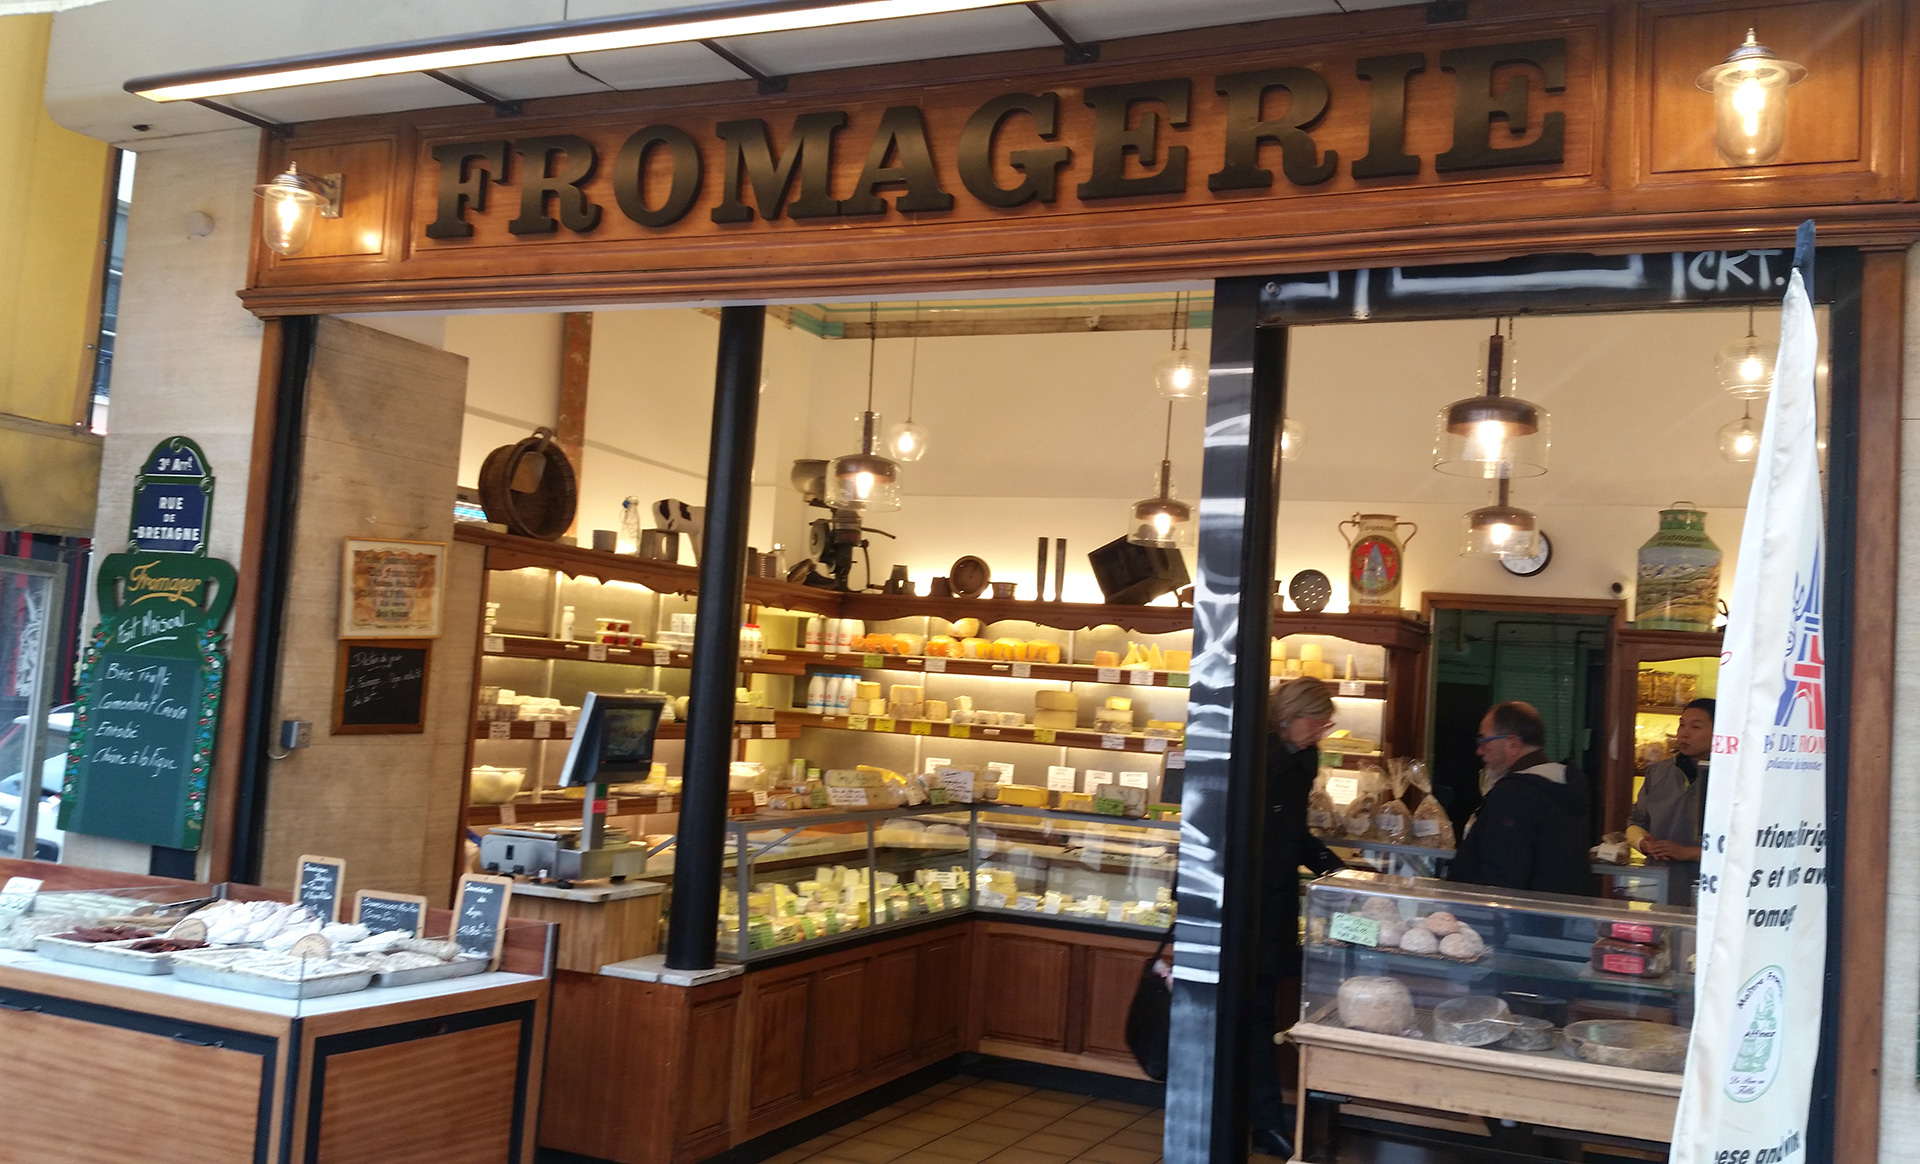 Fromagerie in Paris, France